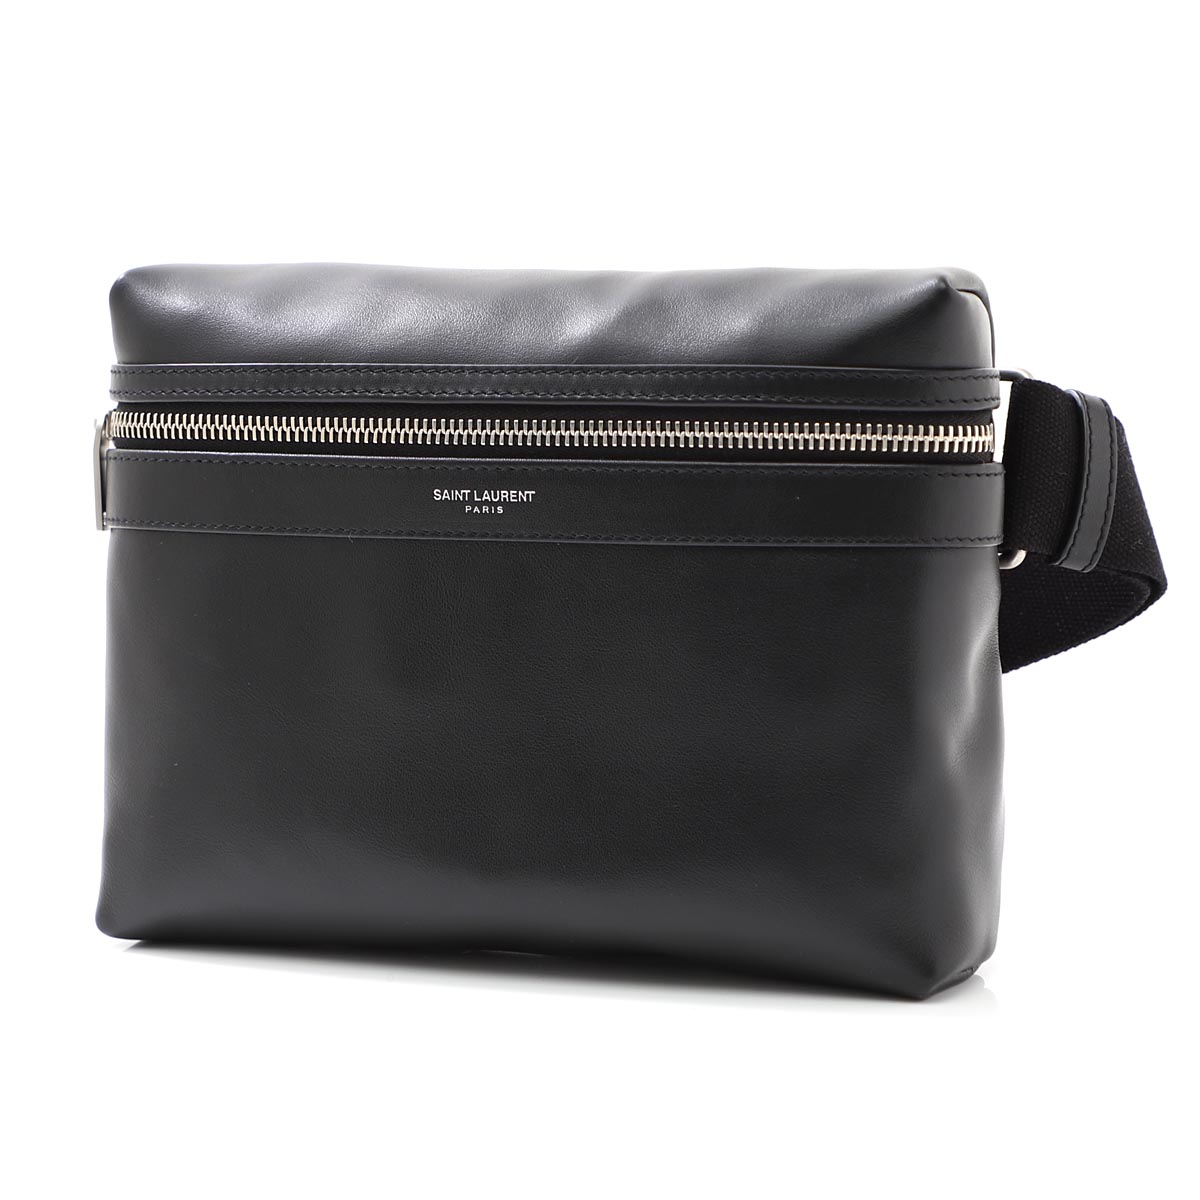 メンズバッグ, ボディバッグ・ウエストポーチ  SAINT LAURENT PARIS 634717 0ay9f 1000 CITY CAMERA BAG IN MATTE LEATHER